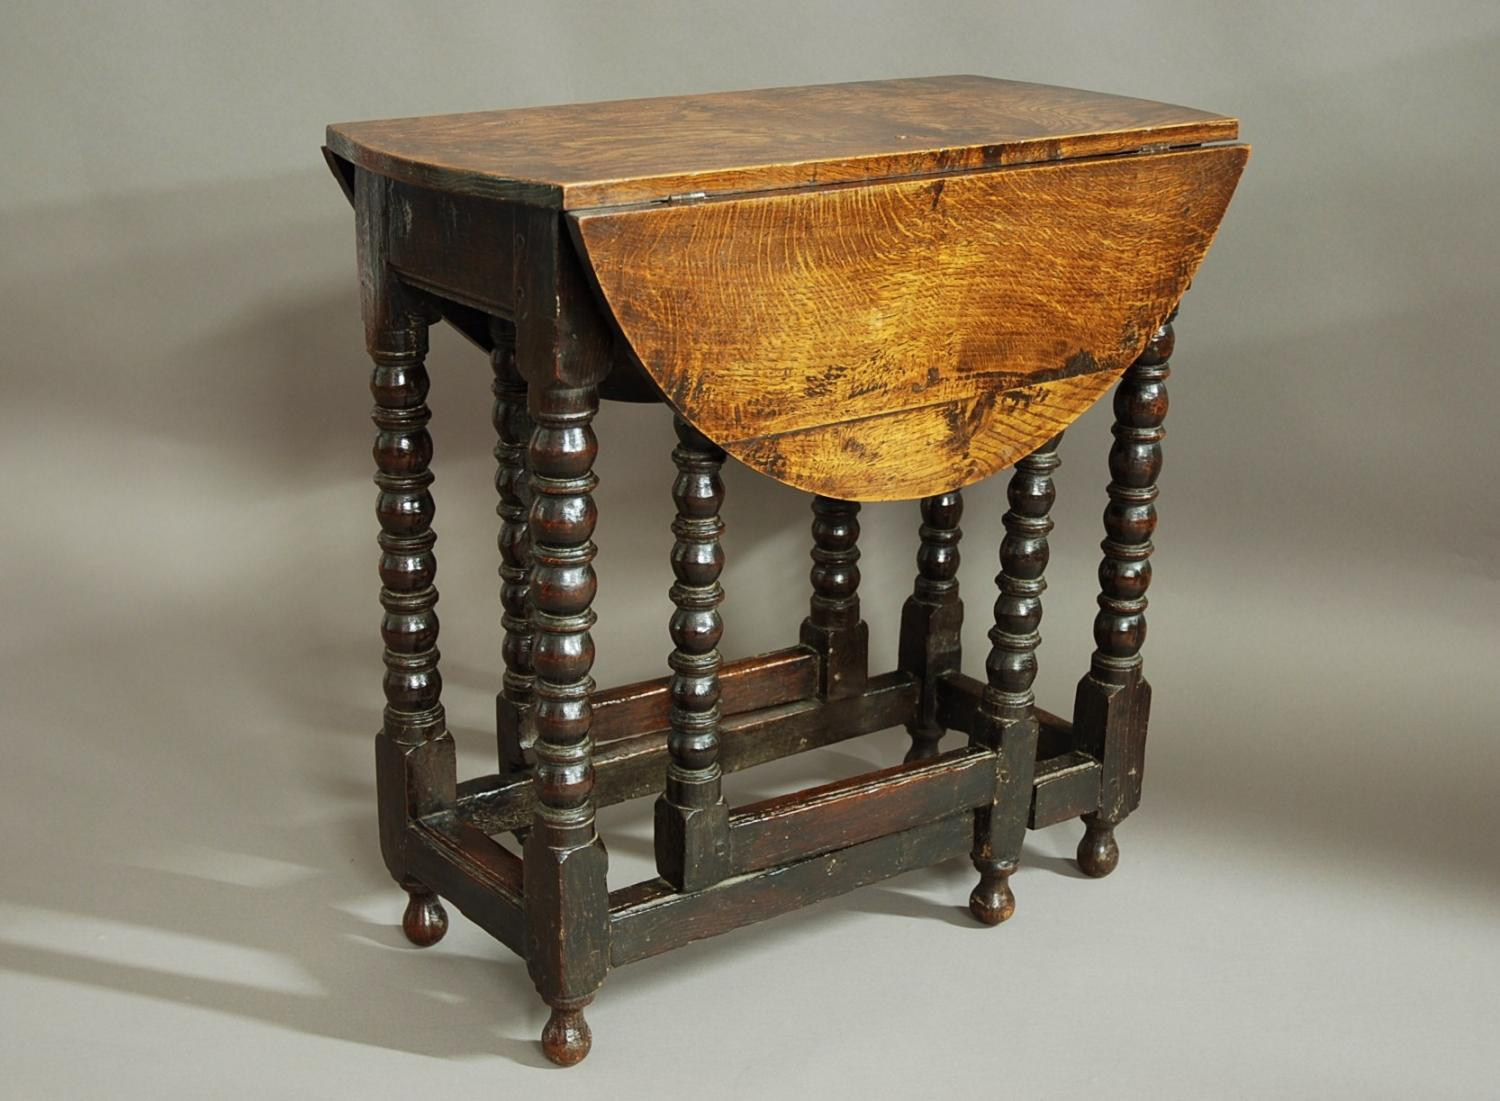 Rare 17thc gateleg table of small proportions